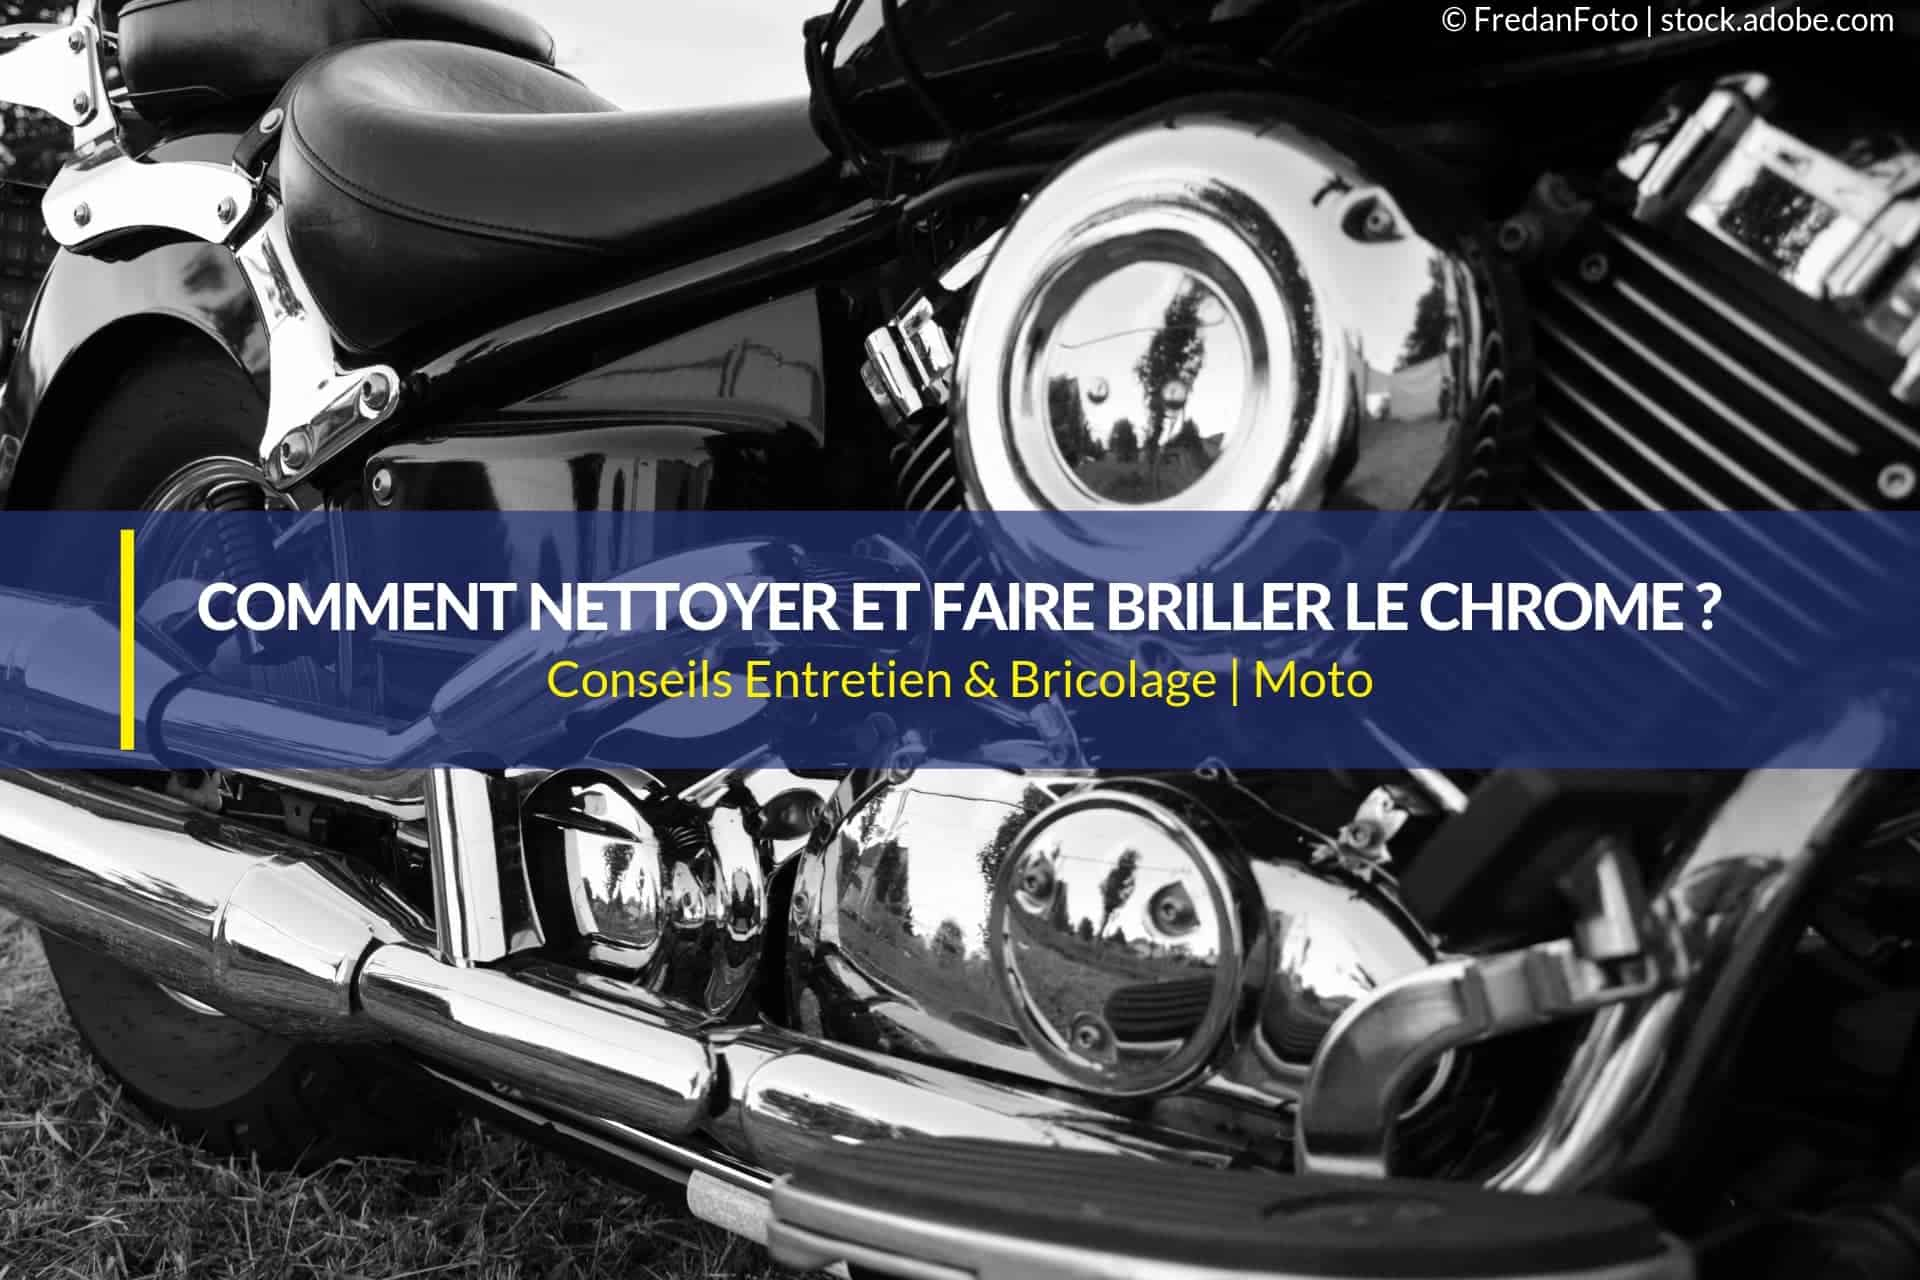 nettoyer faire briller le chrome